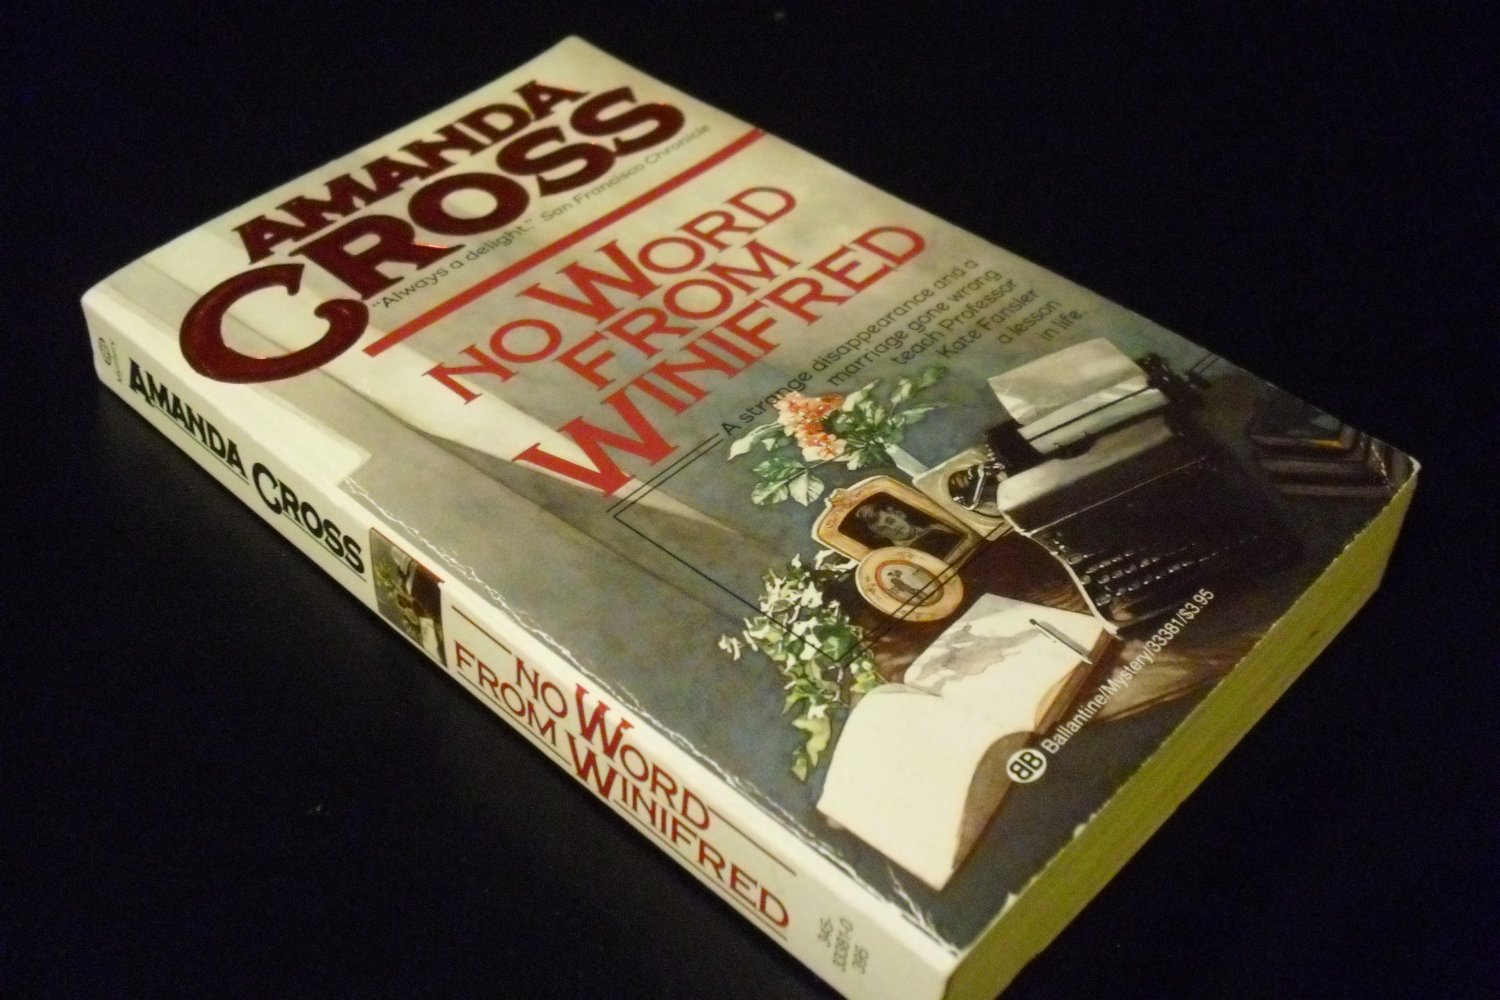 No Word from Winifred by Carolyn G. Heilbrun (Paperback, 1990)